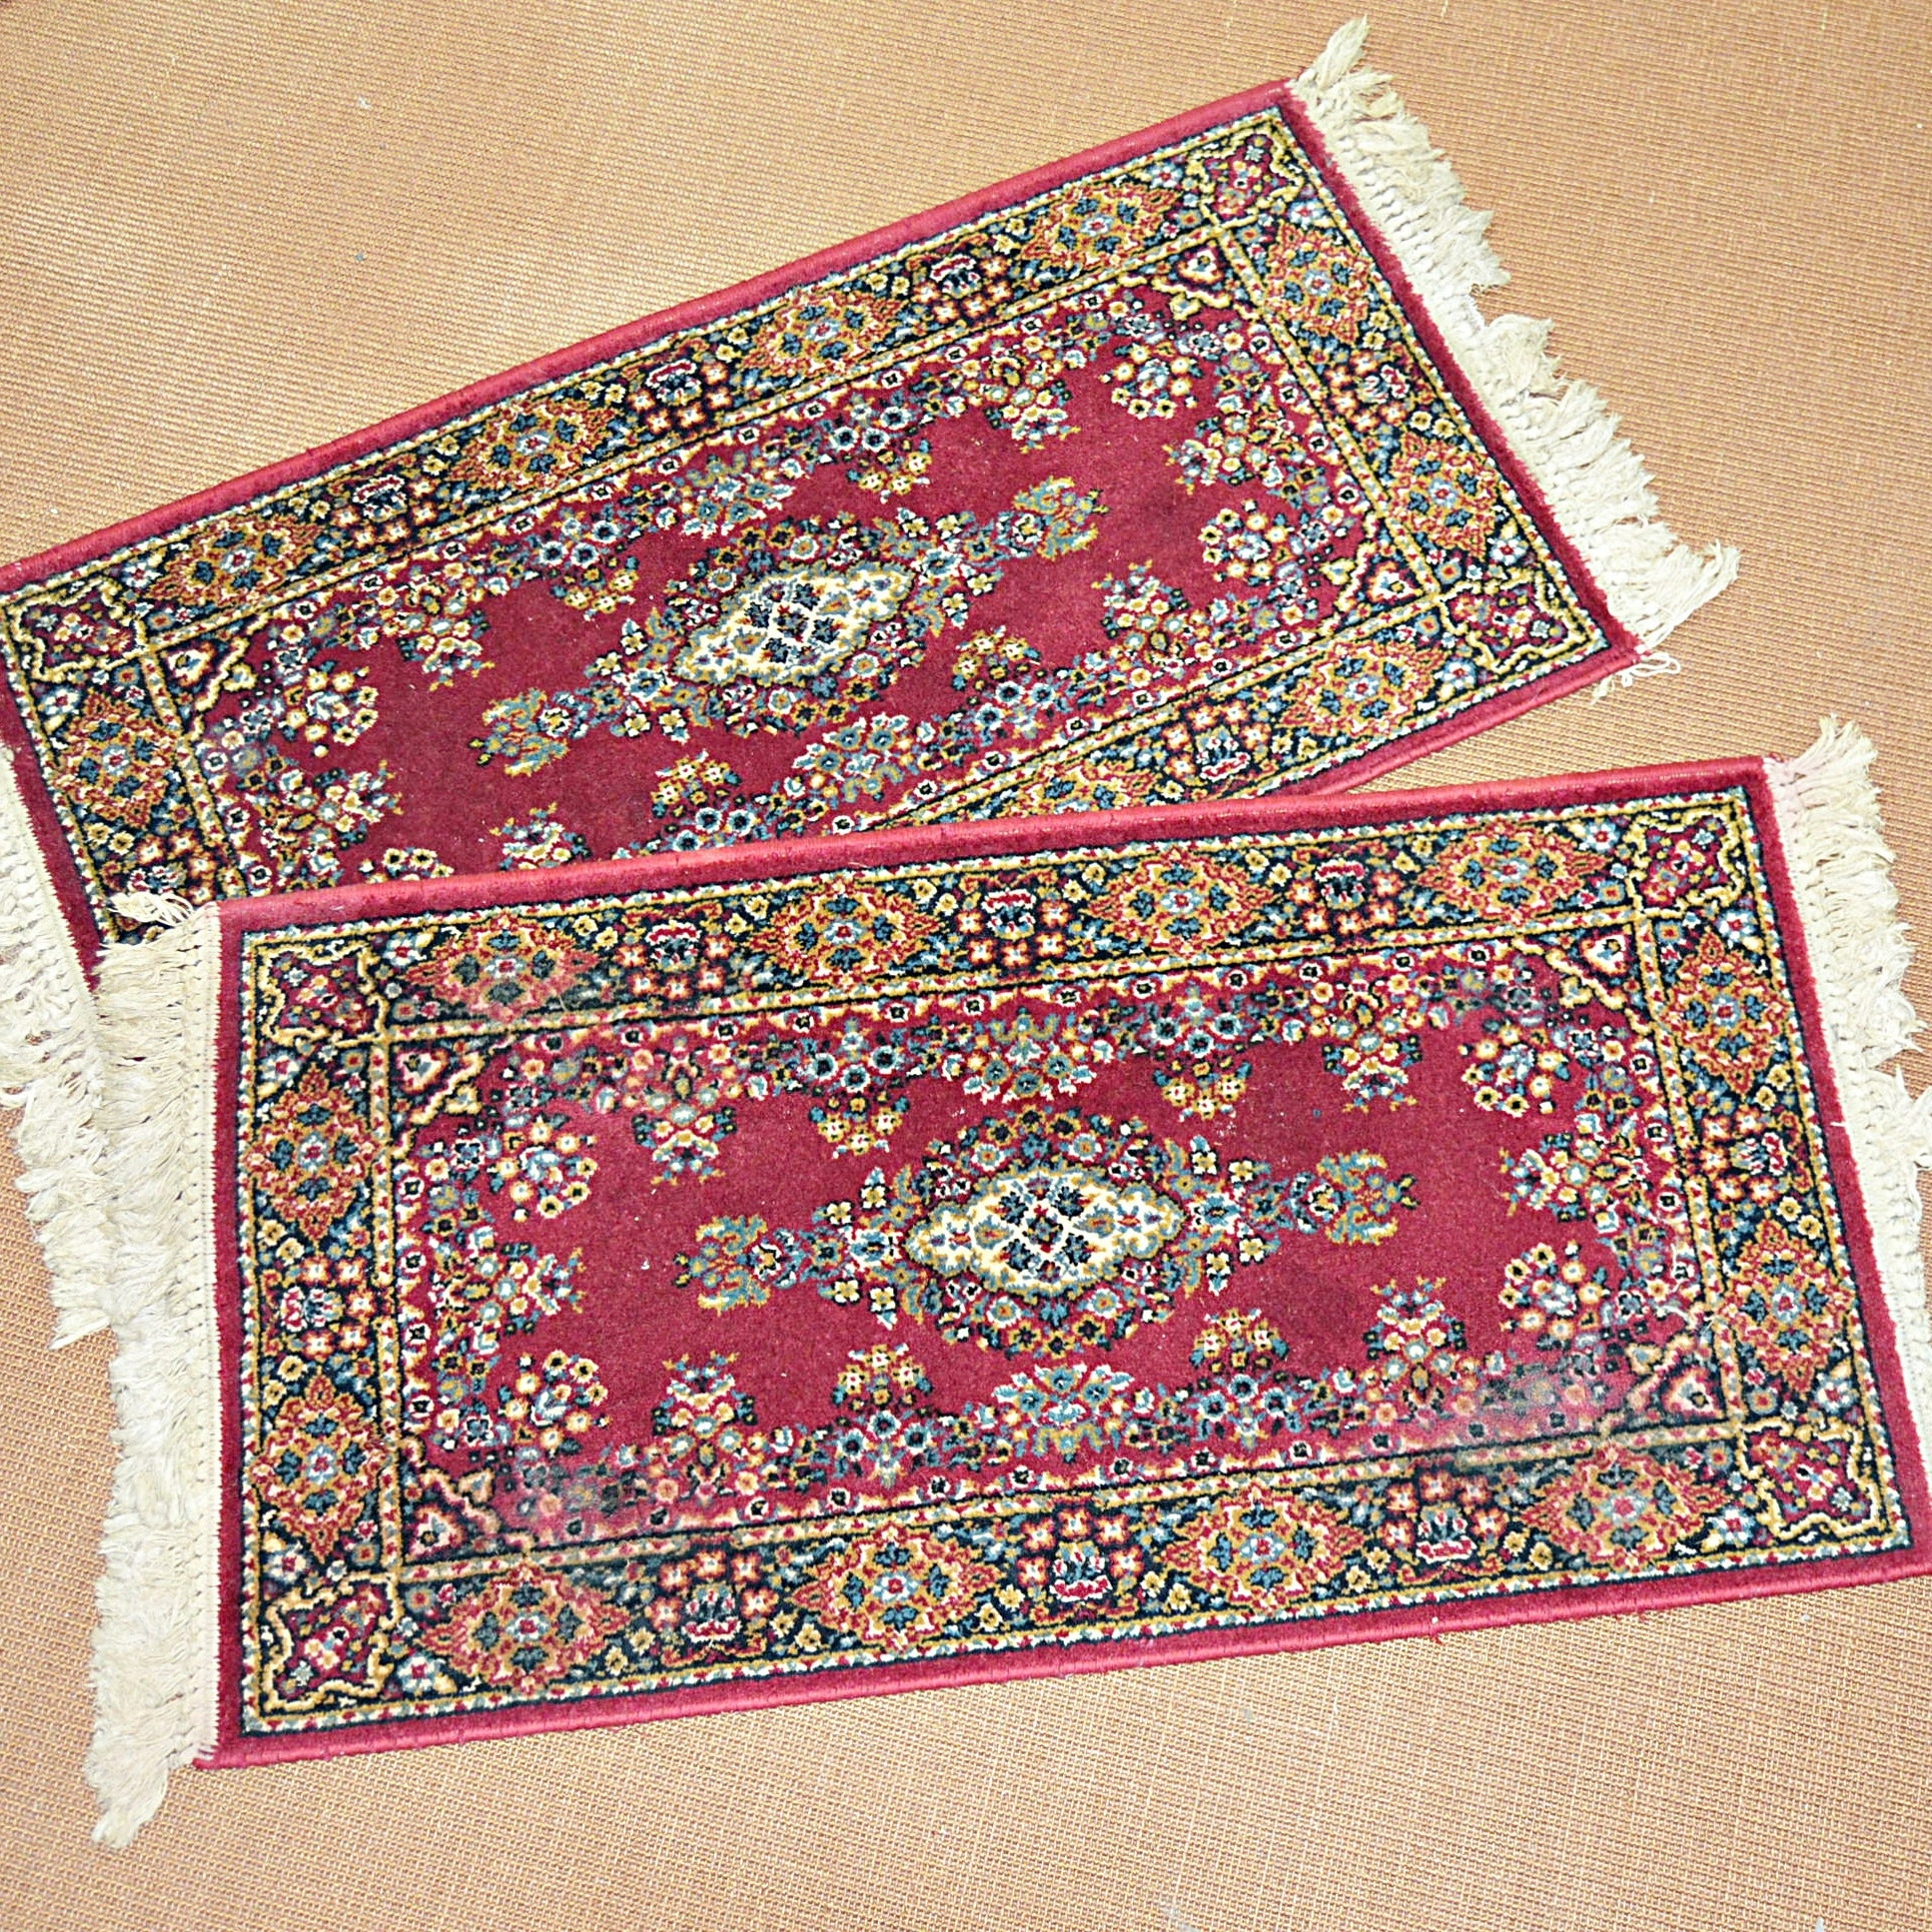 Two Small Machine Made Kerman Style Accent Rugs